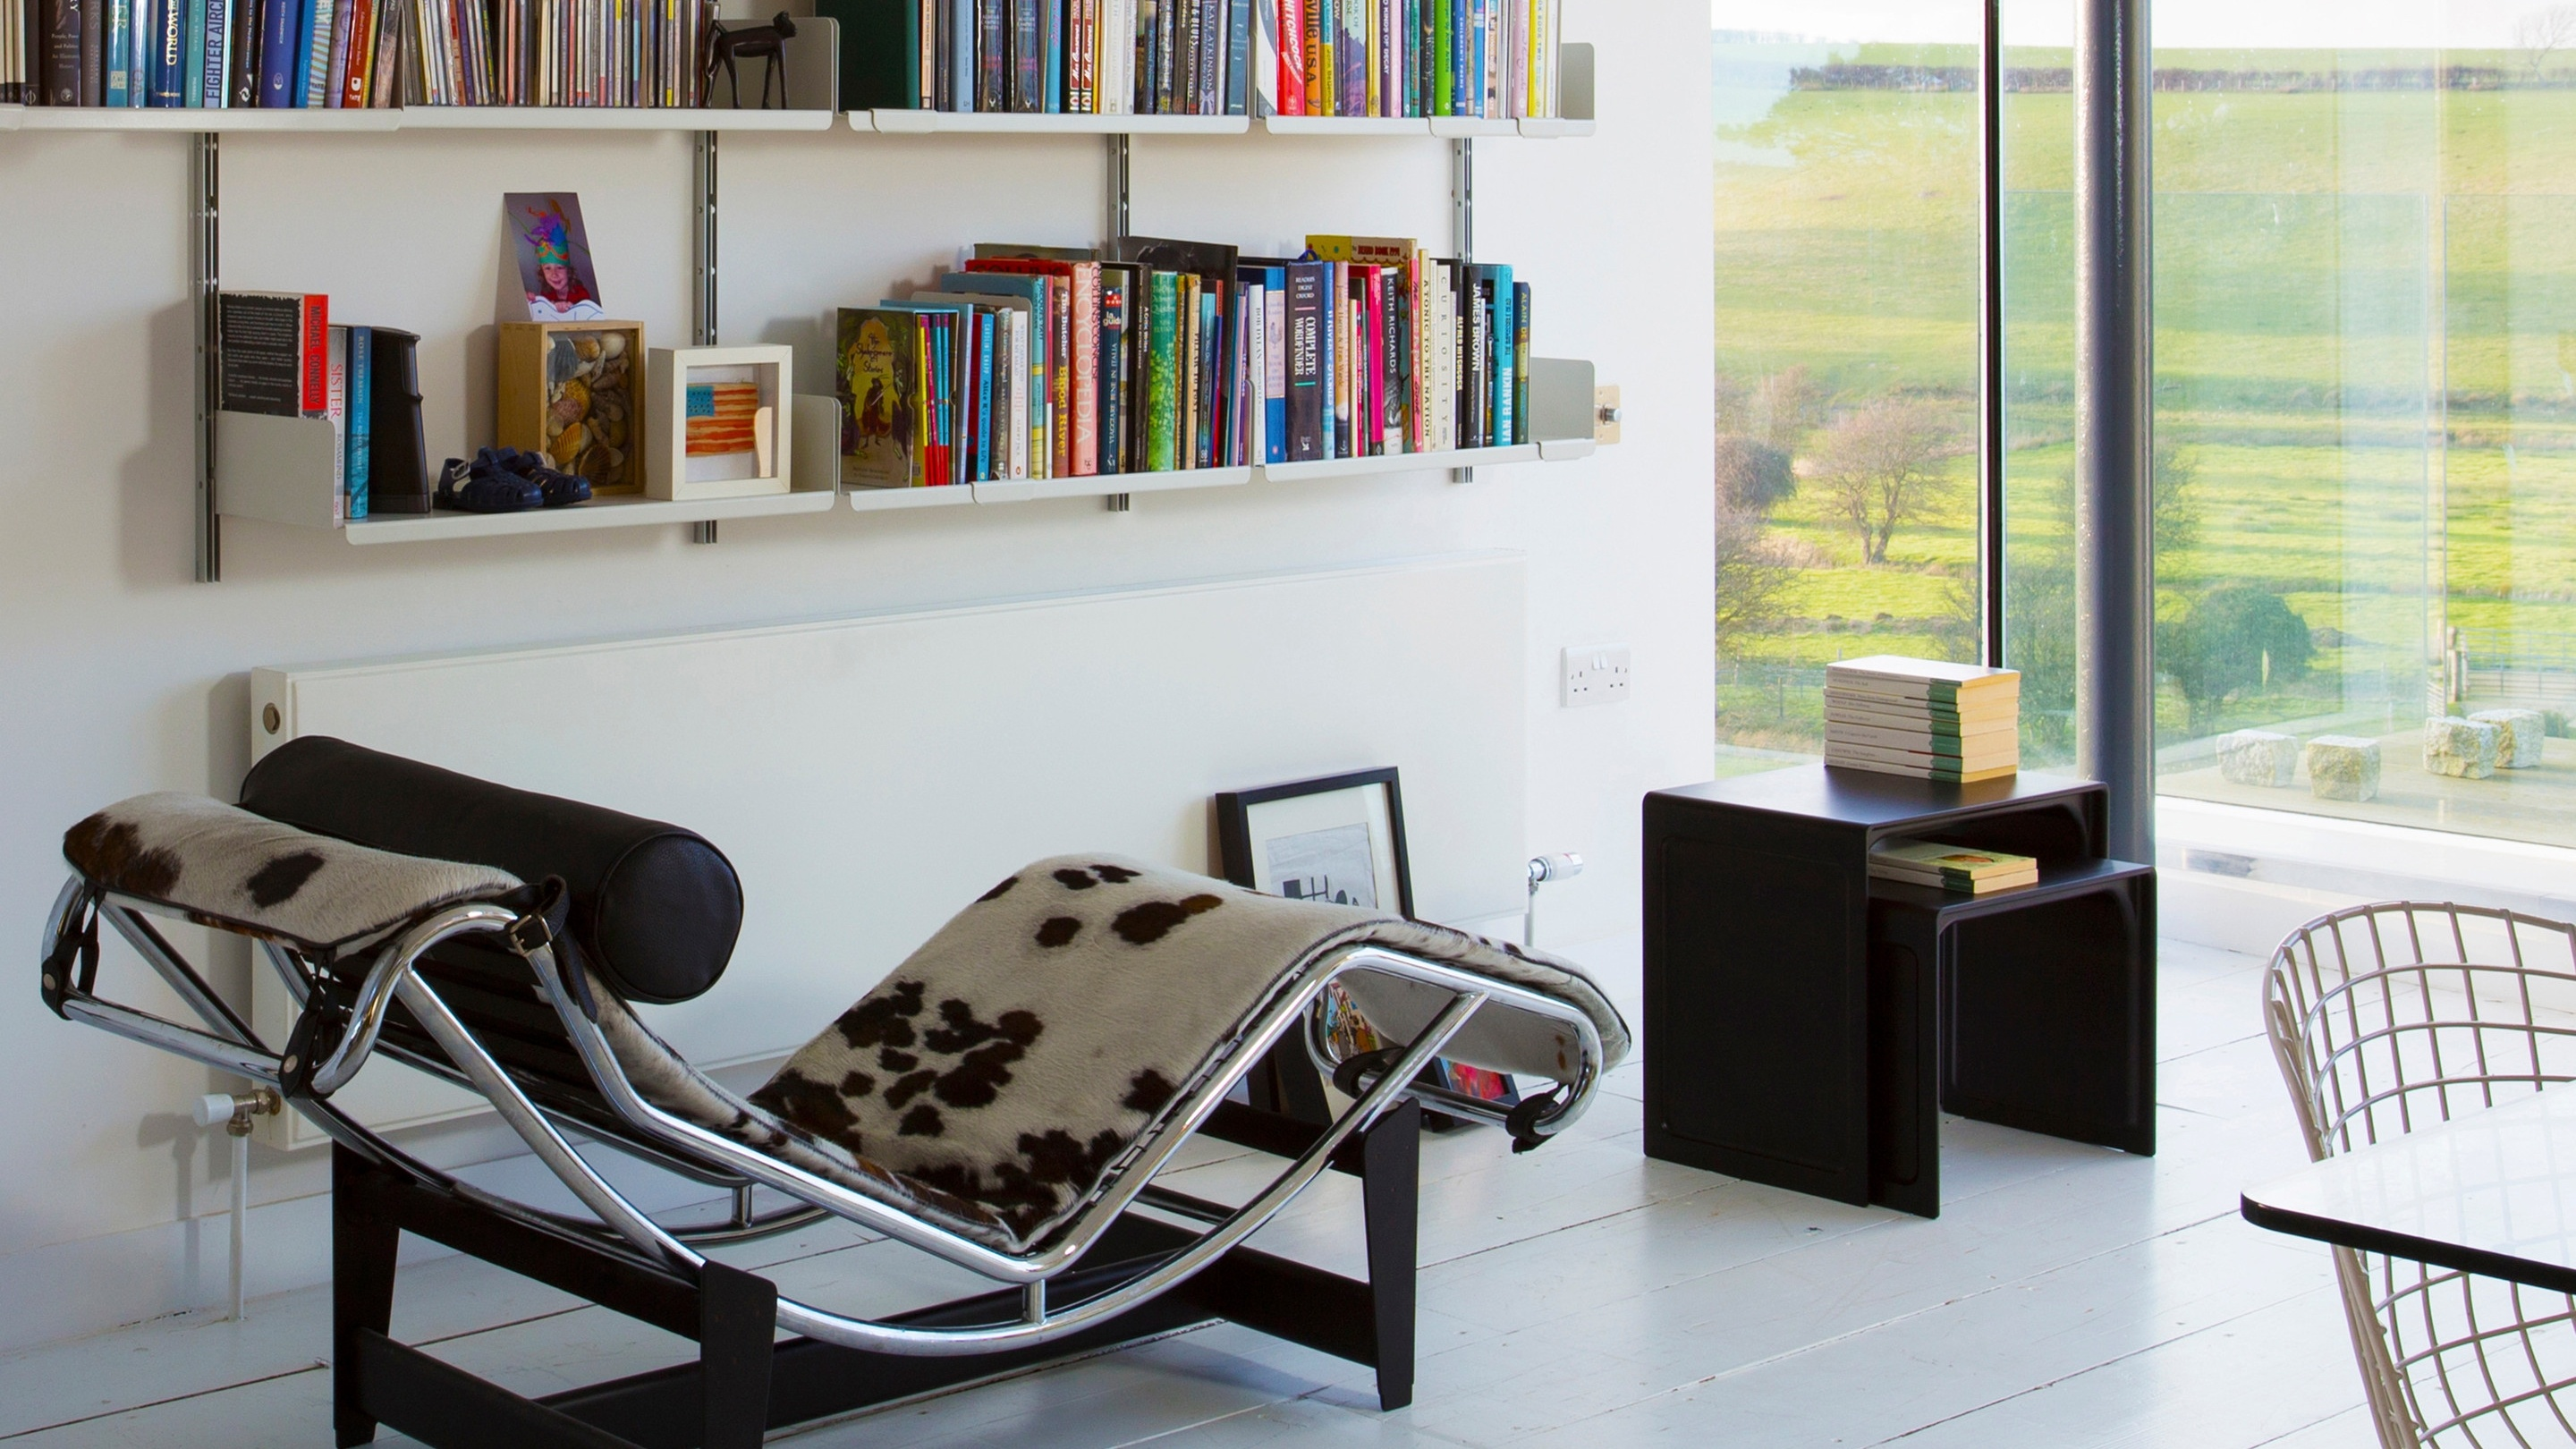 A nesting pair of black side tables, with the classics in the countryside